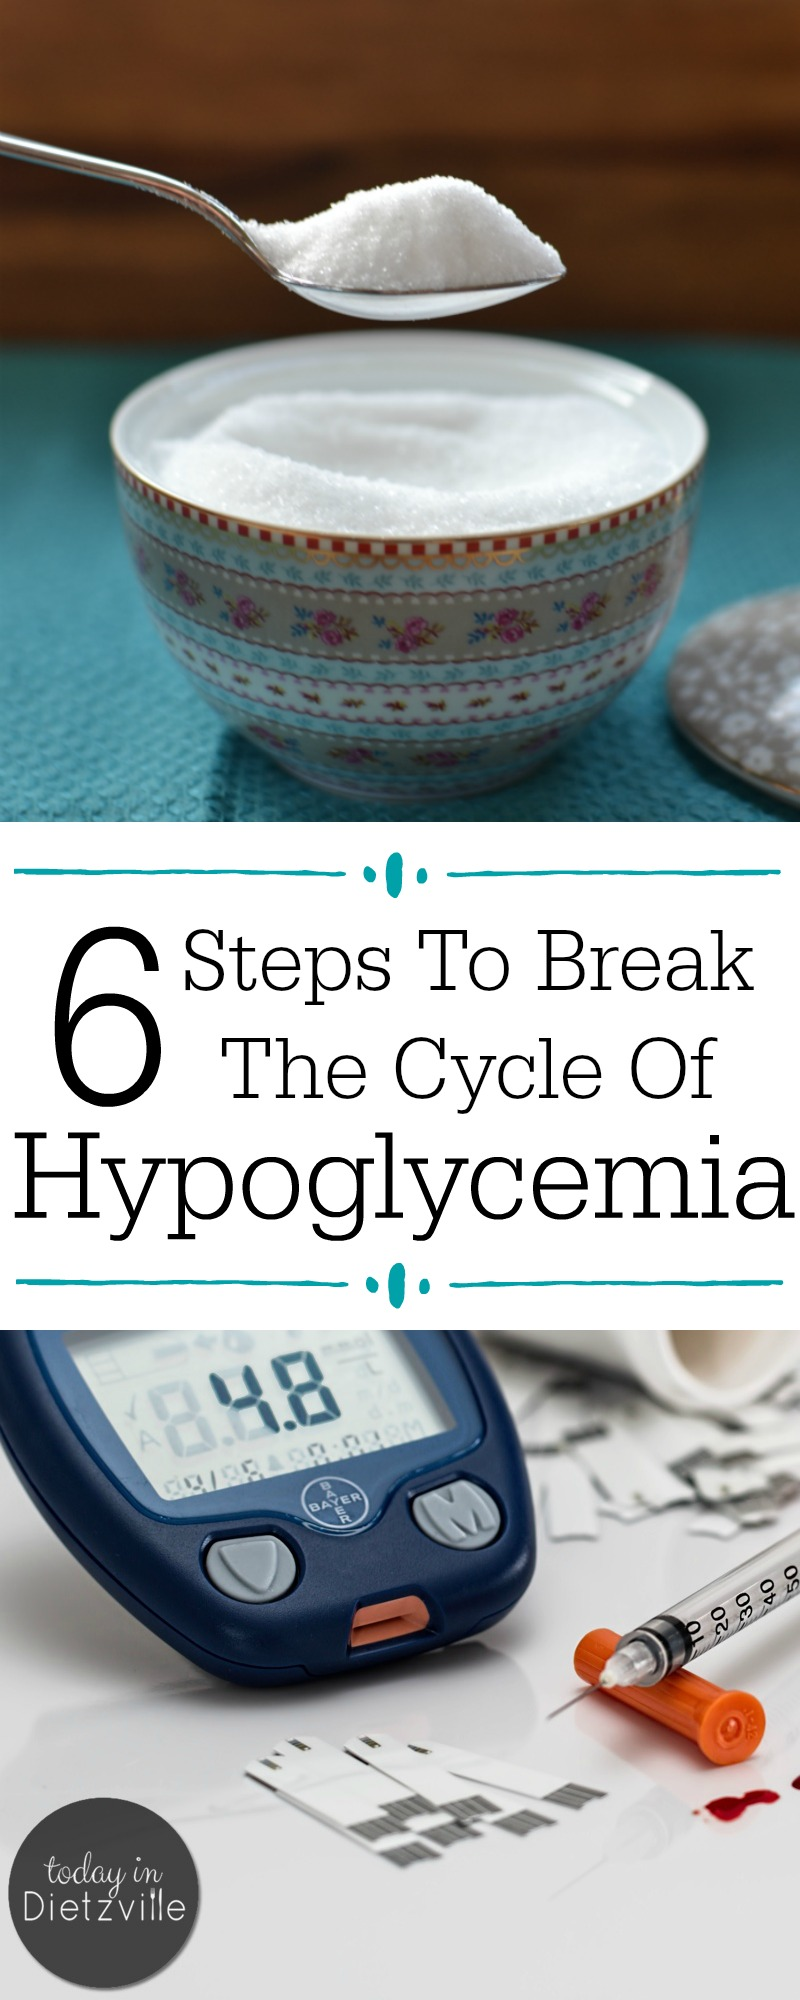 """Do you experience carb and sugar cravings, dizziness, shakiness, irritability, or feeling """"hangry""""? These (& more!) are signs of hypoglycemia -- a precursor to insulin resistance and diabetes. Learn how to break the cycle of hypoglycemia and nourish your way out of imbalanced blood sugar TODAY!"""